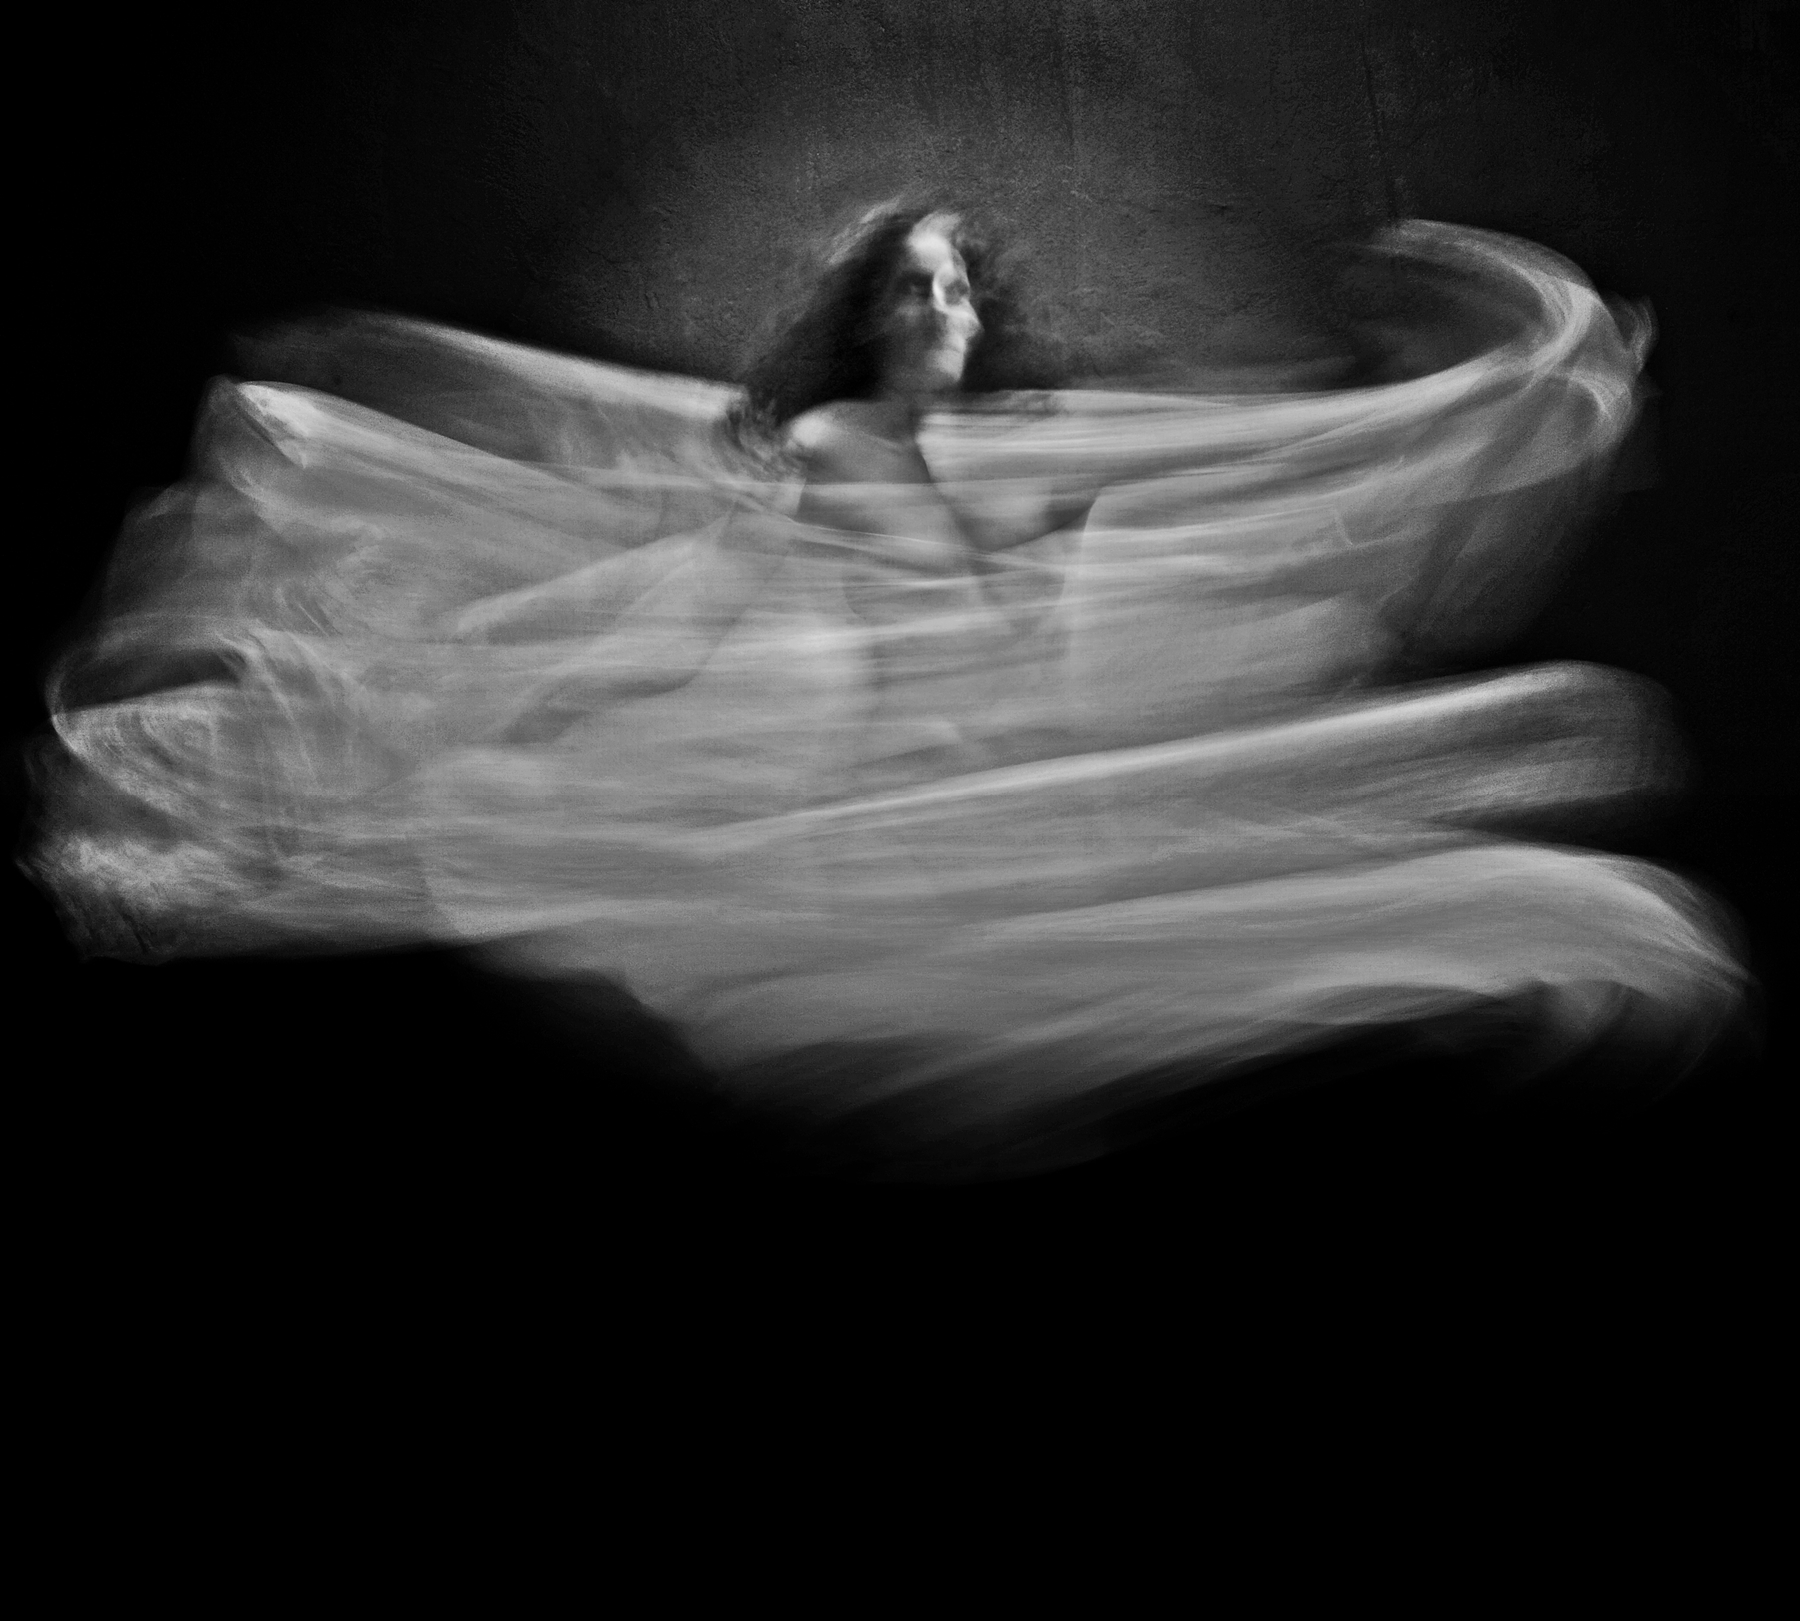 katerina_bukolska_in a maelstrom of womanhood_1.jpg